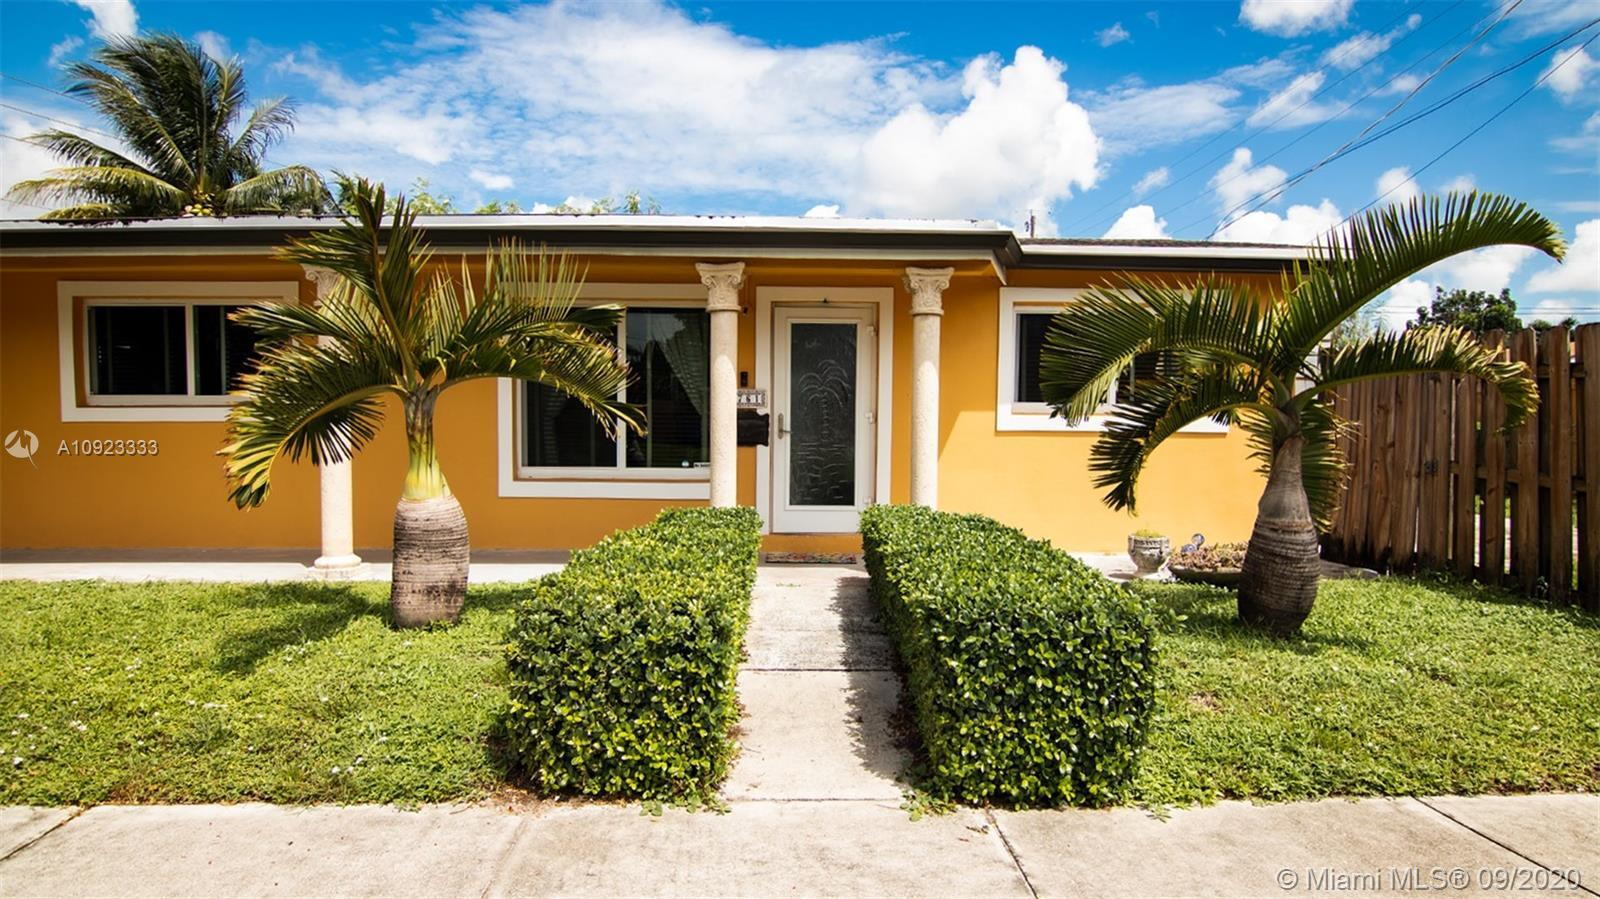 This updated gem with plenty of patio space is located in central Hollywood, just a short drive from